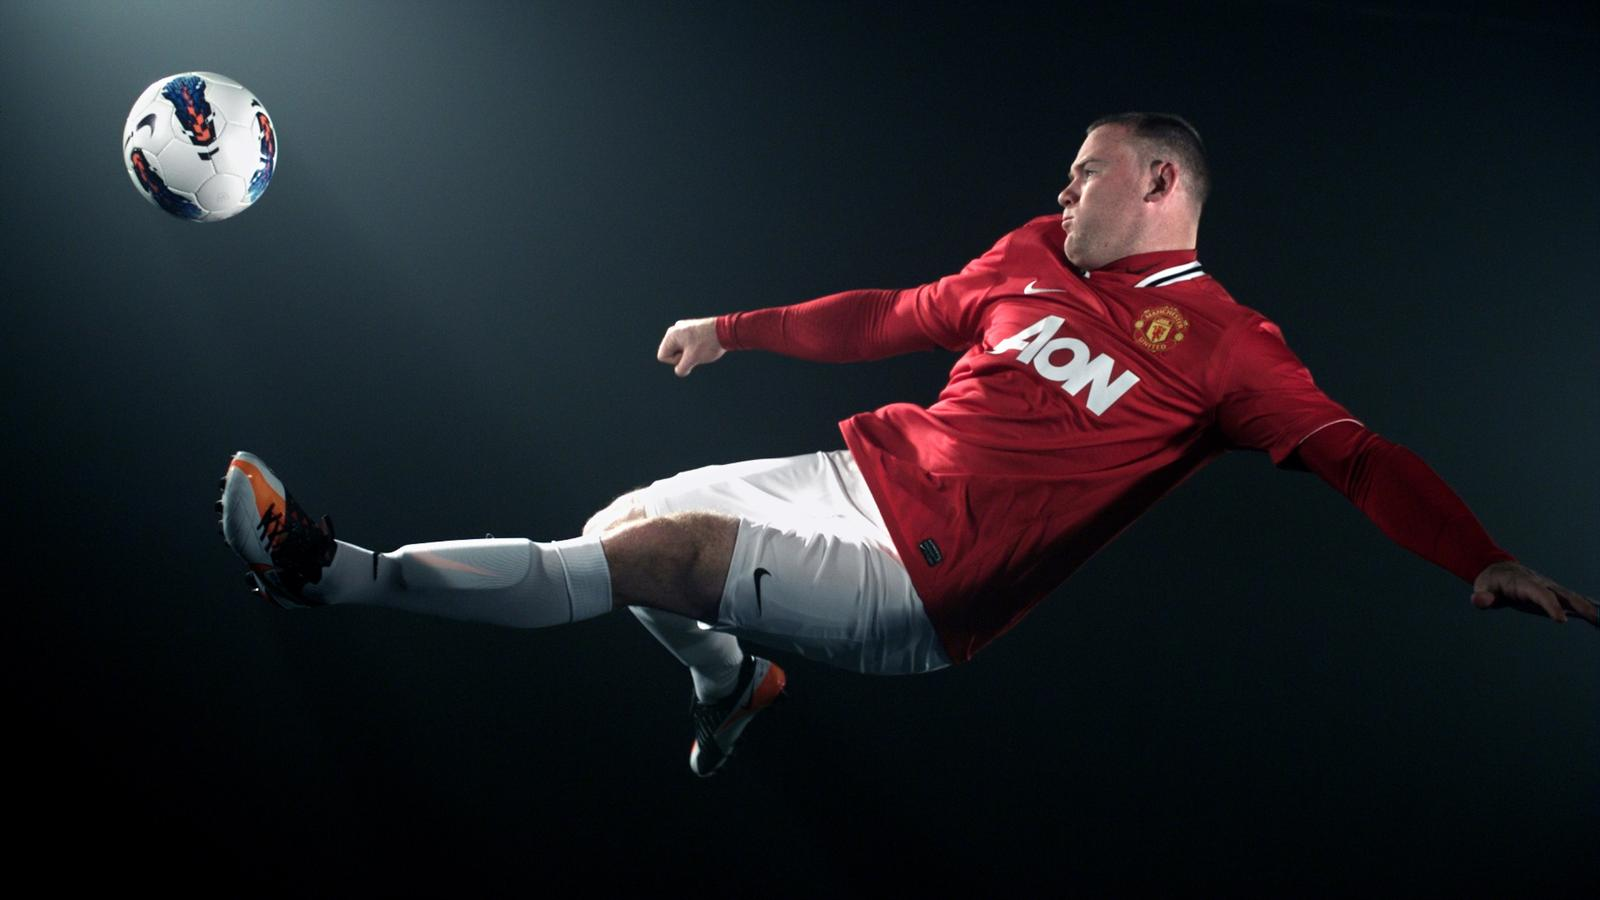 Rooney Nike Shoes